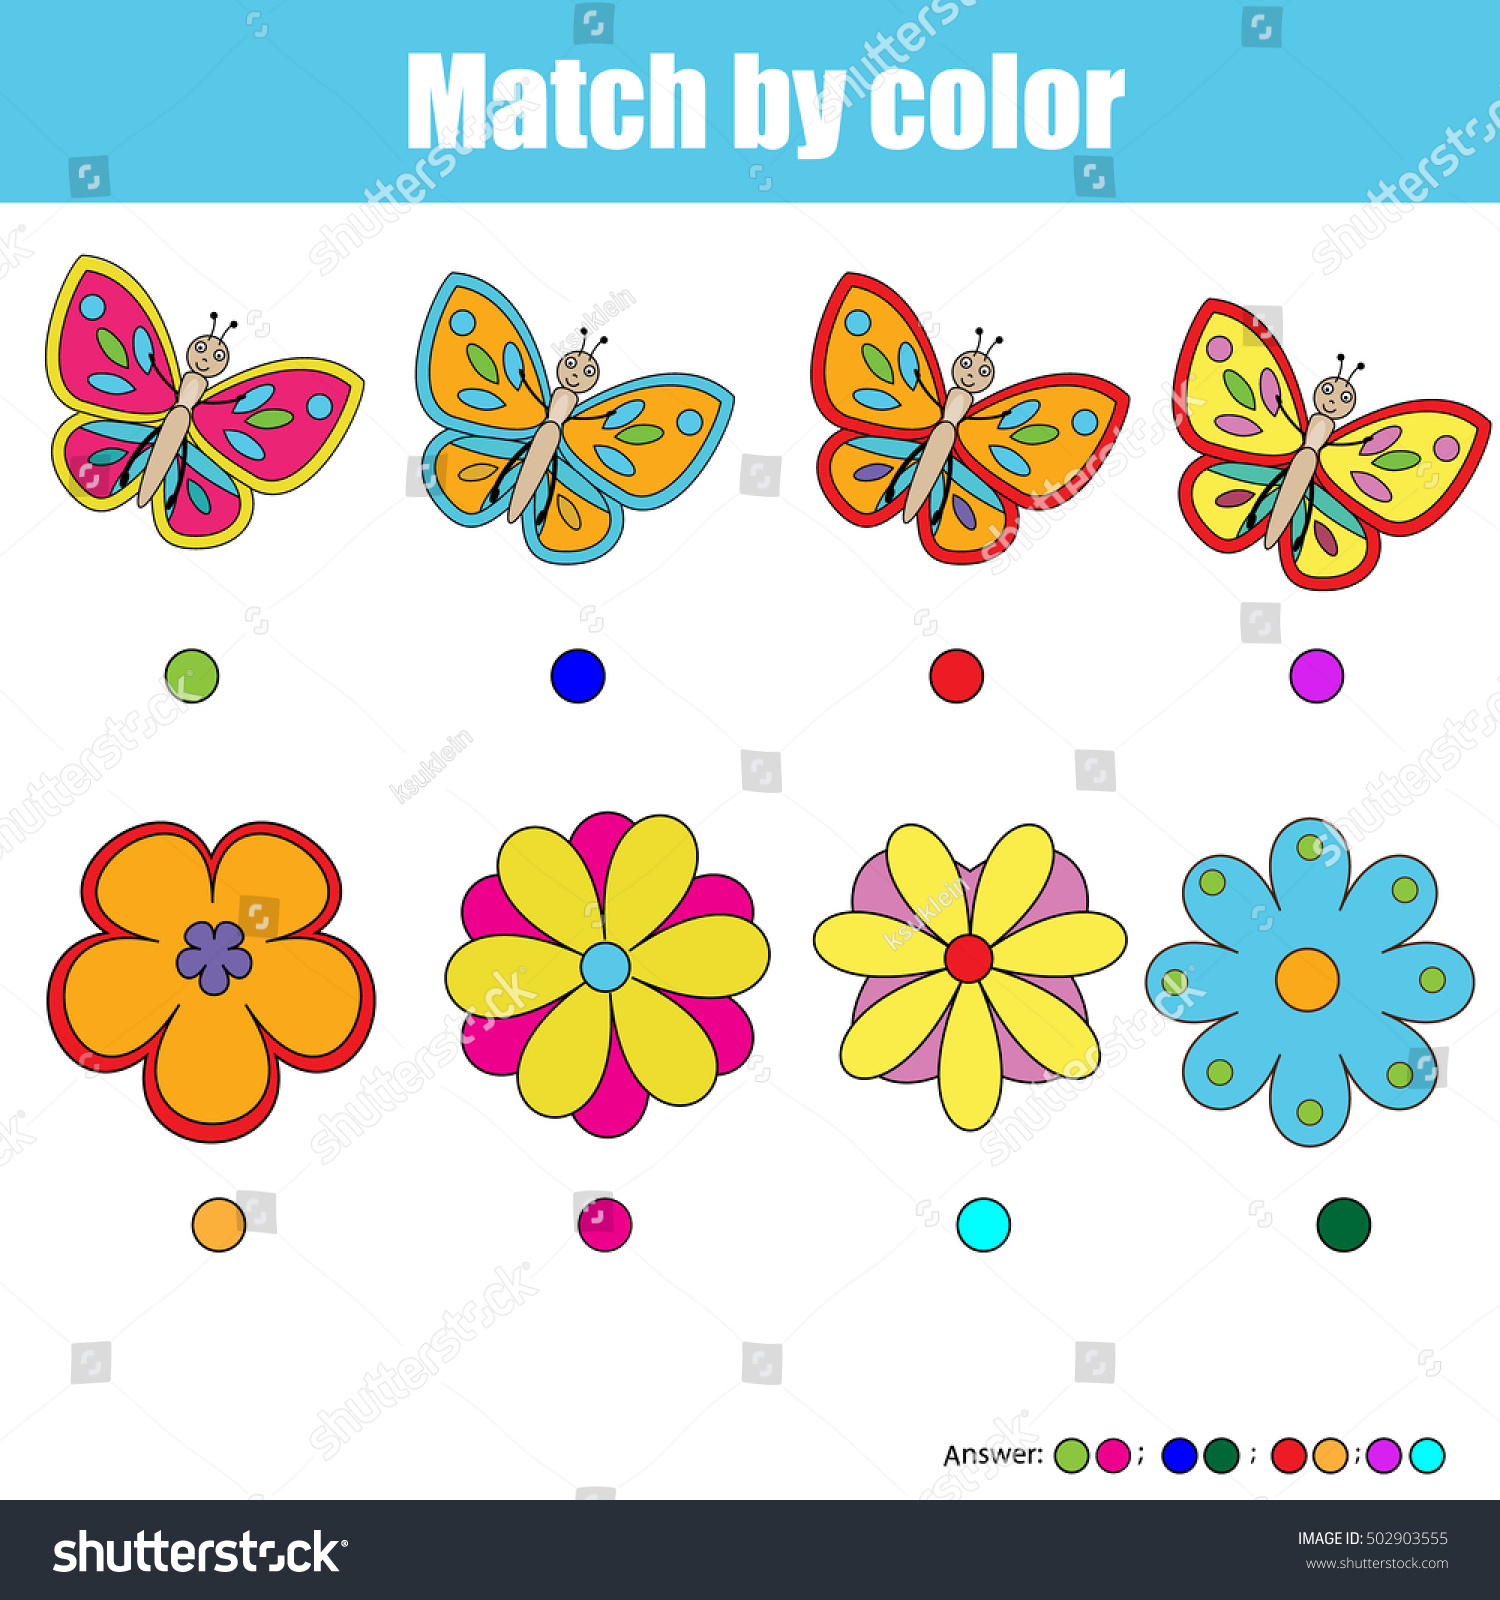 Matching Pairs Worksheet